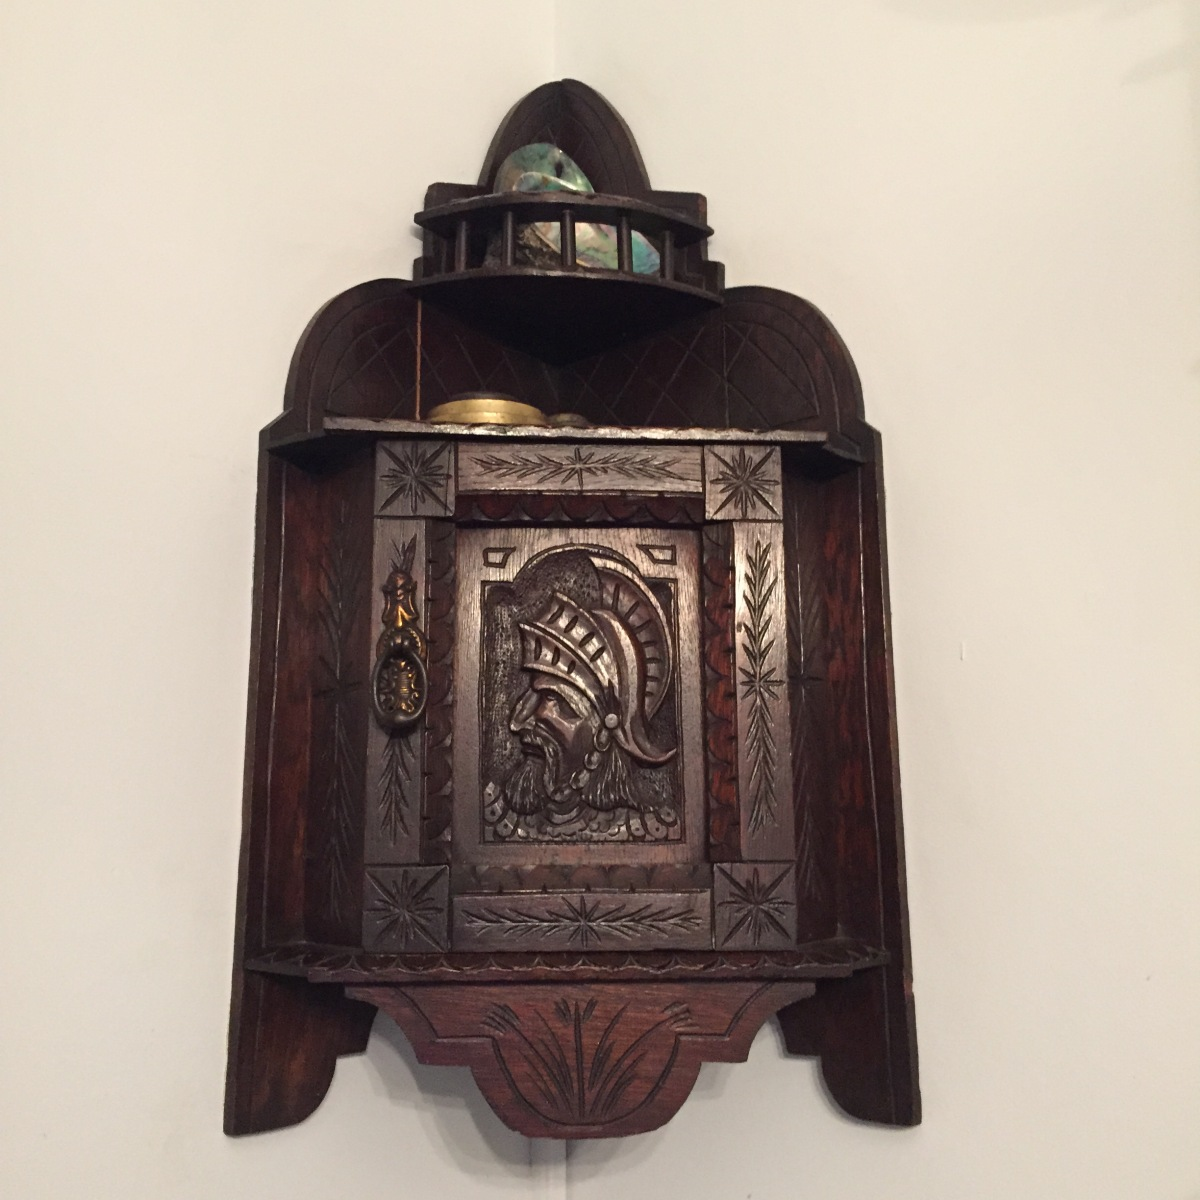 A photo of a dark wooden corner box with intricate carving